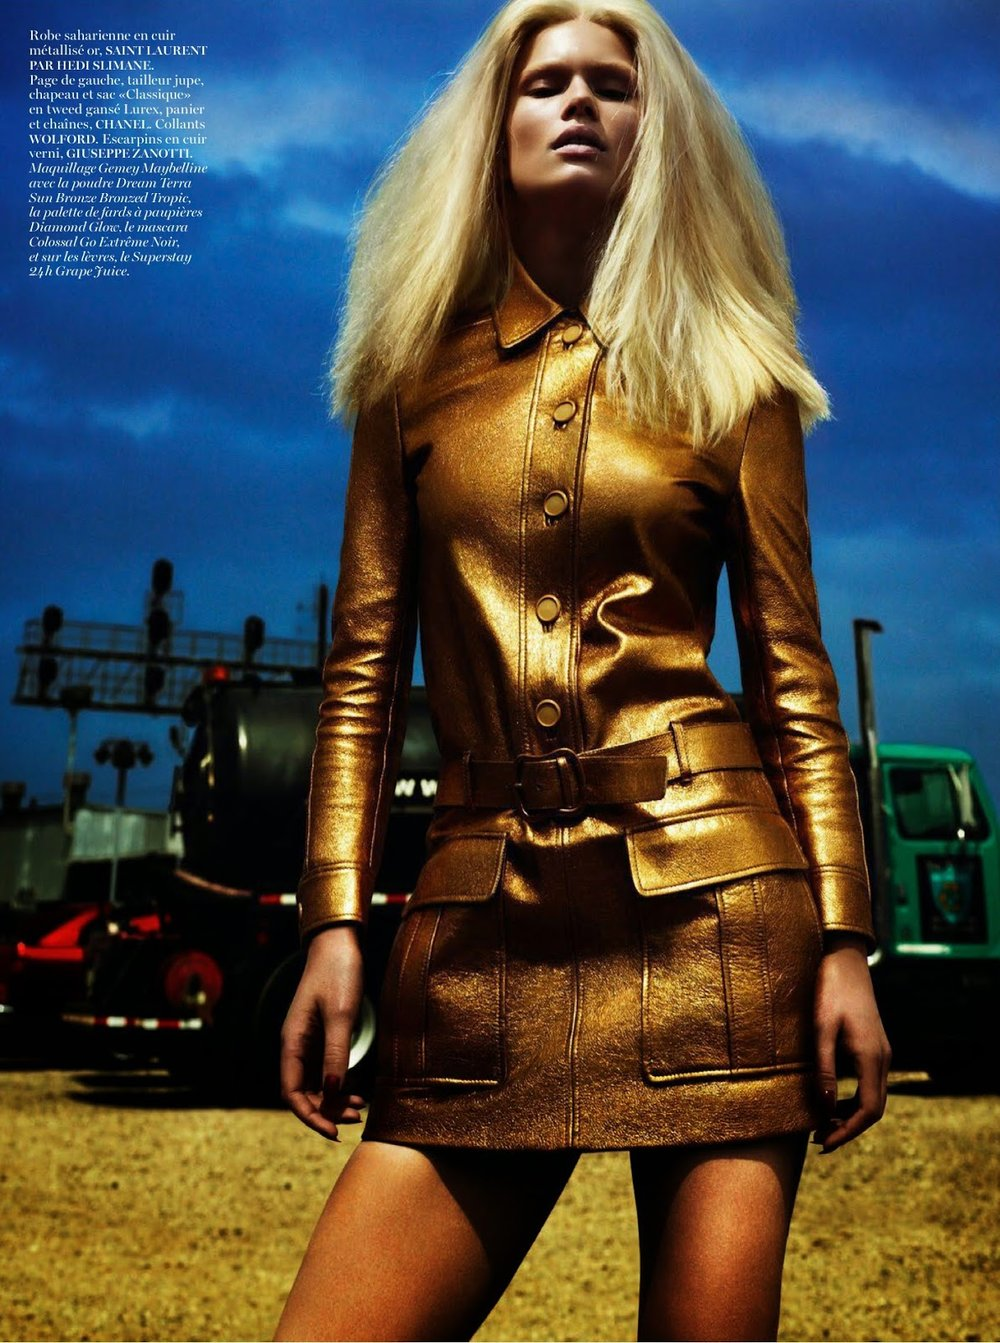 anna-ewers-by-mert-alas-marcus-piggott-for-vogue-paris-august-2014-4.jpg